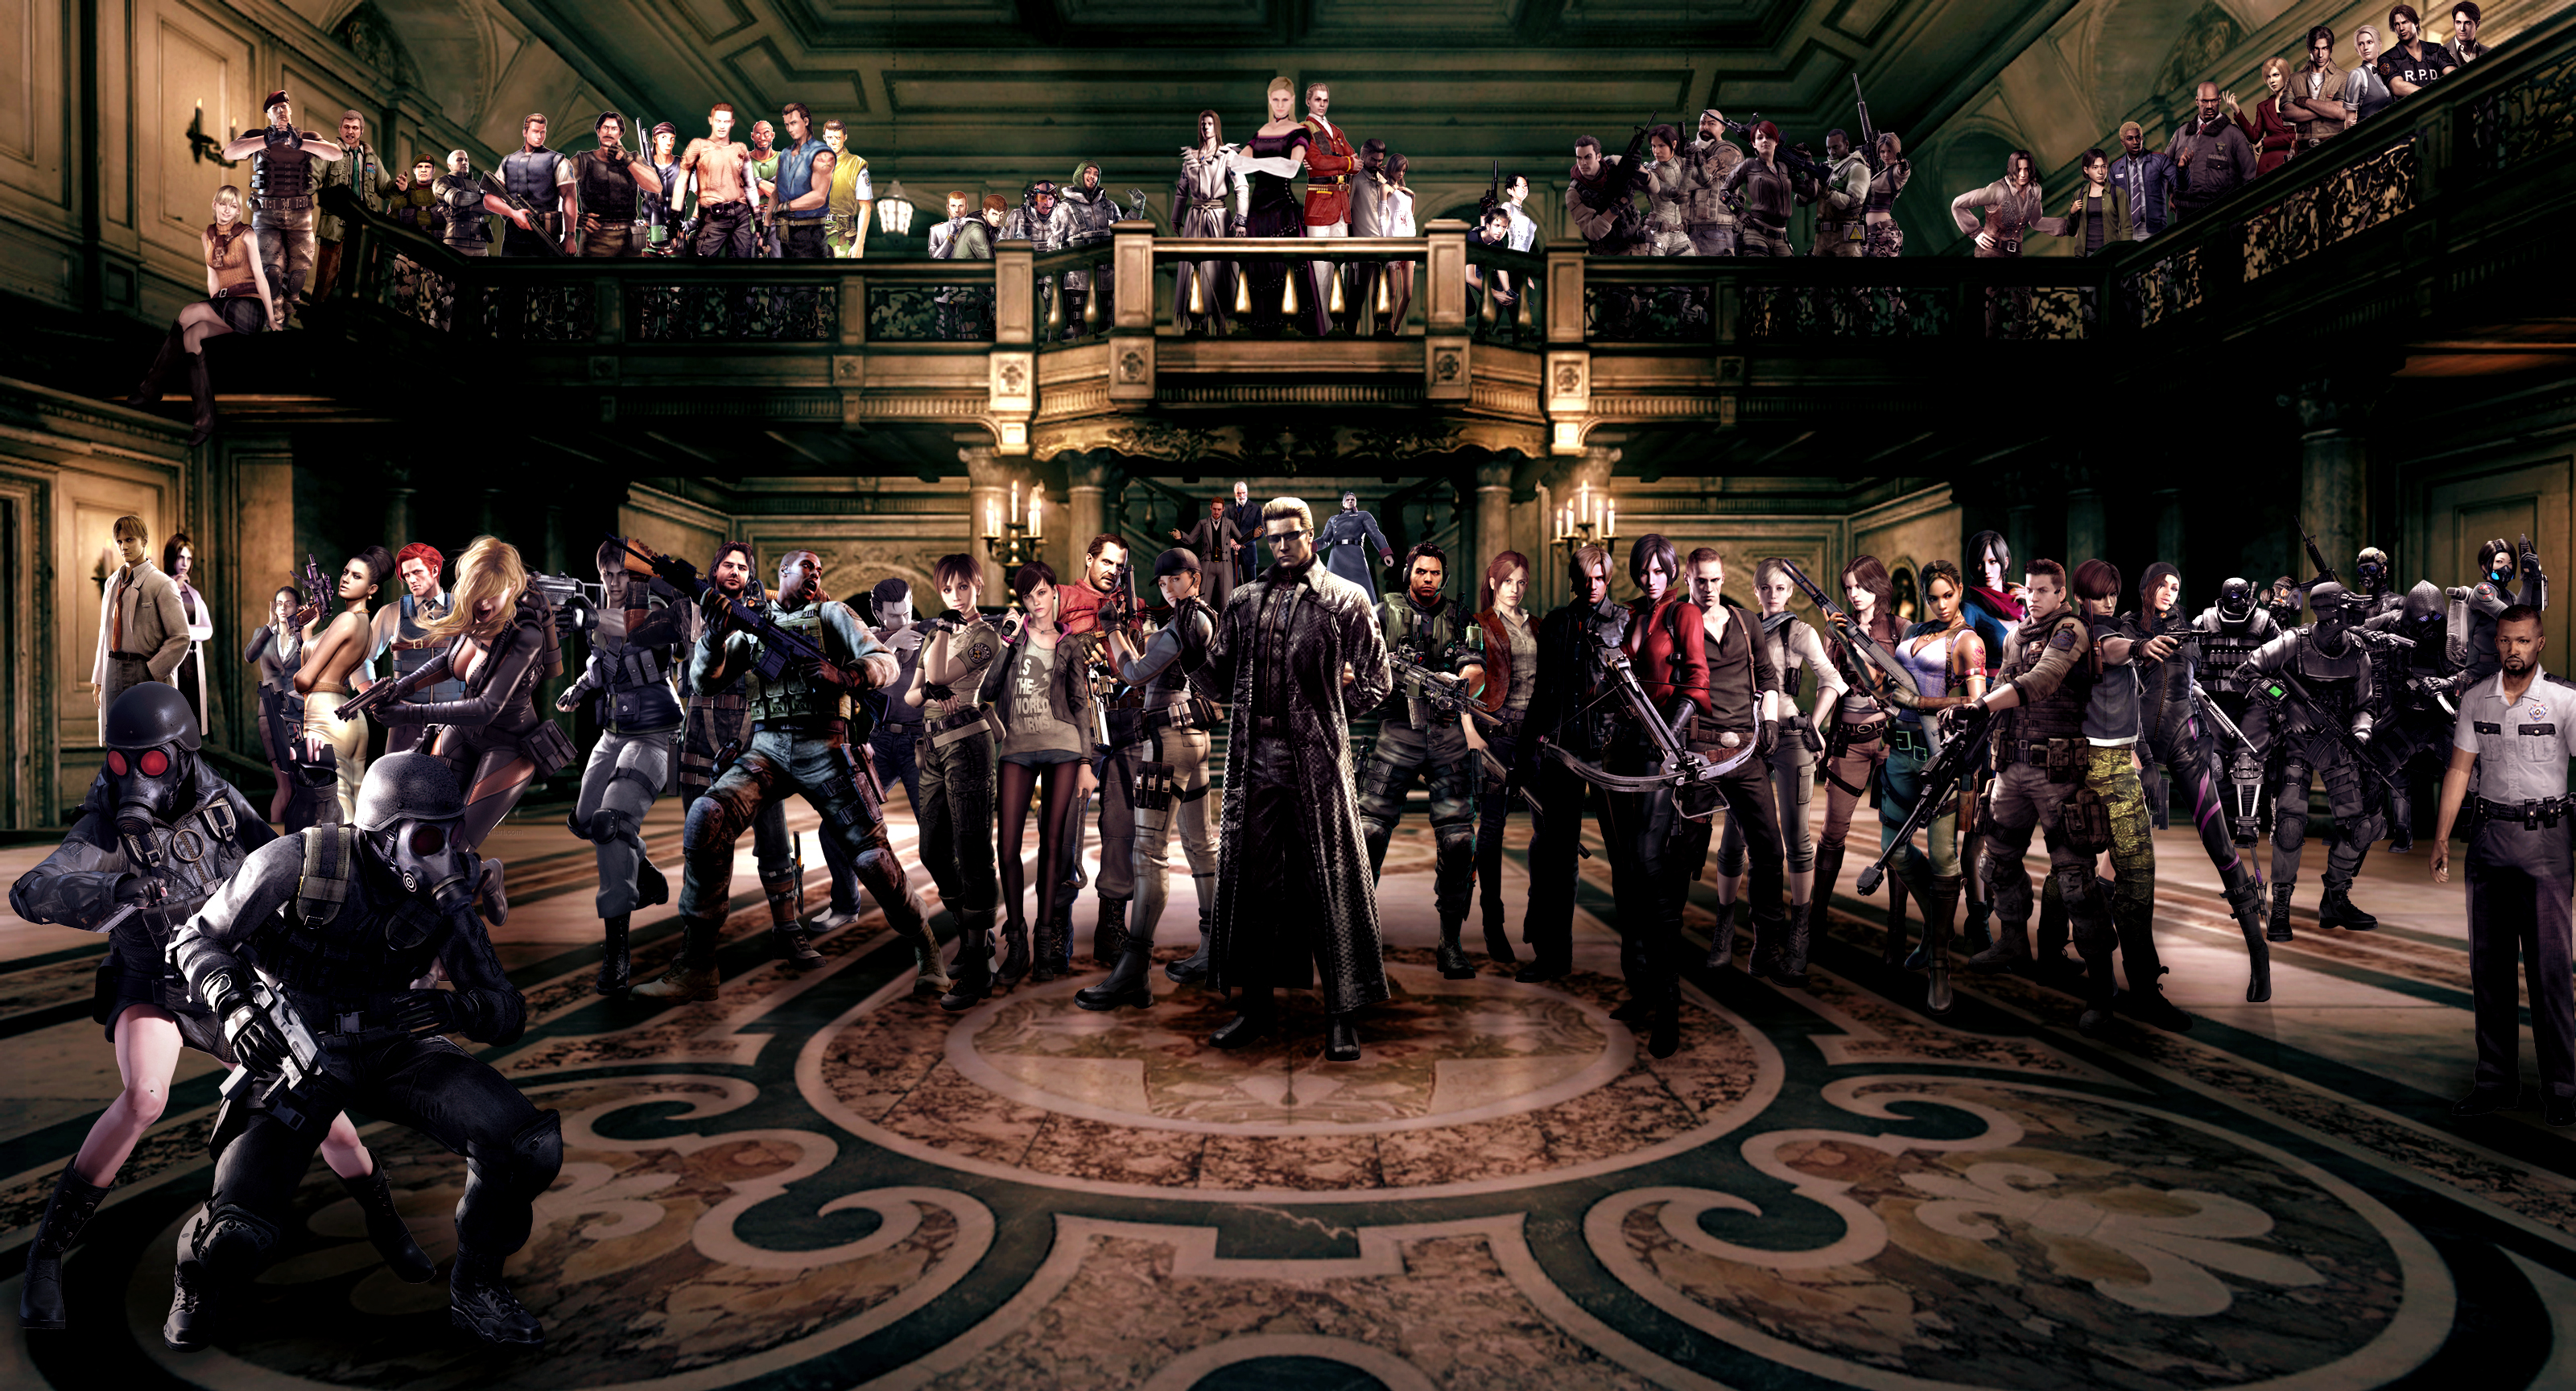 review paper of resident evil Audience reviews for resident evil a frenetic electro-rockish sci-fi zombie movie that focuses more on its intriguing mystery than on the scares, especially during the well-paced first act.